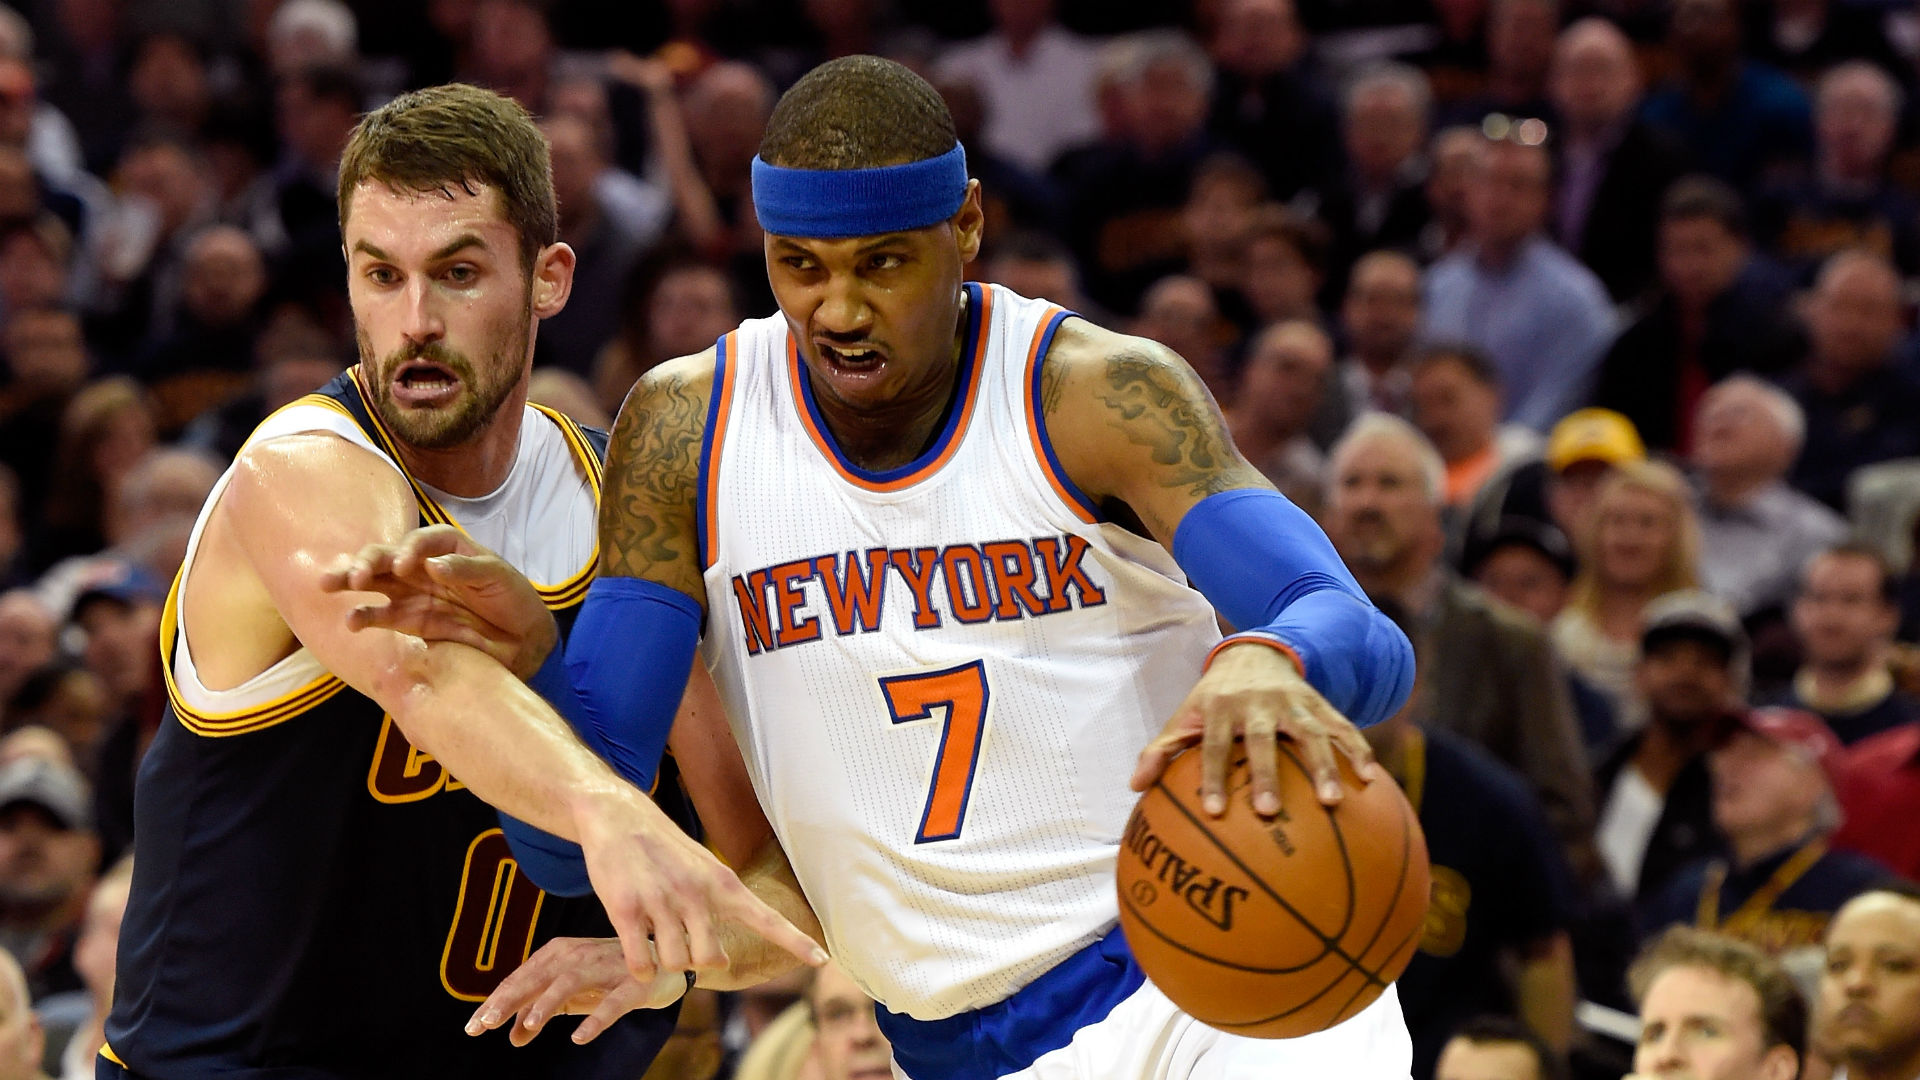 NBA NY Knicks Trade Rumors: Is Carmelo Anthony Upset with Phil Jackson?